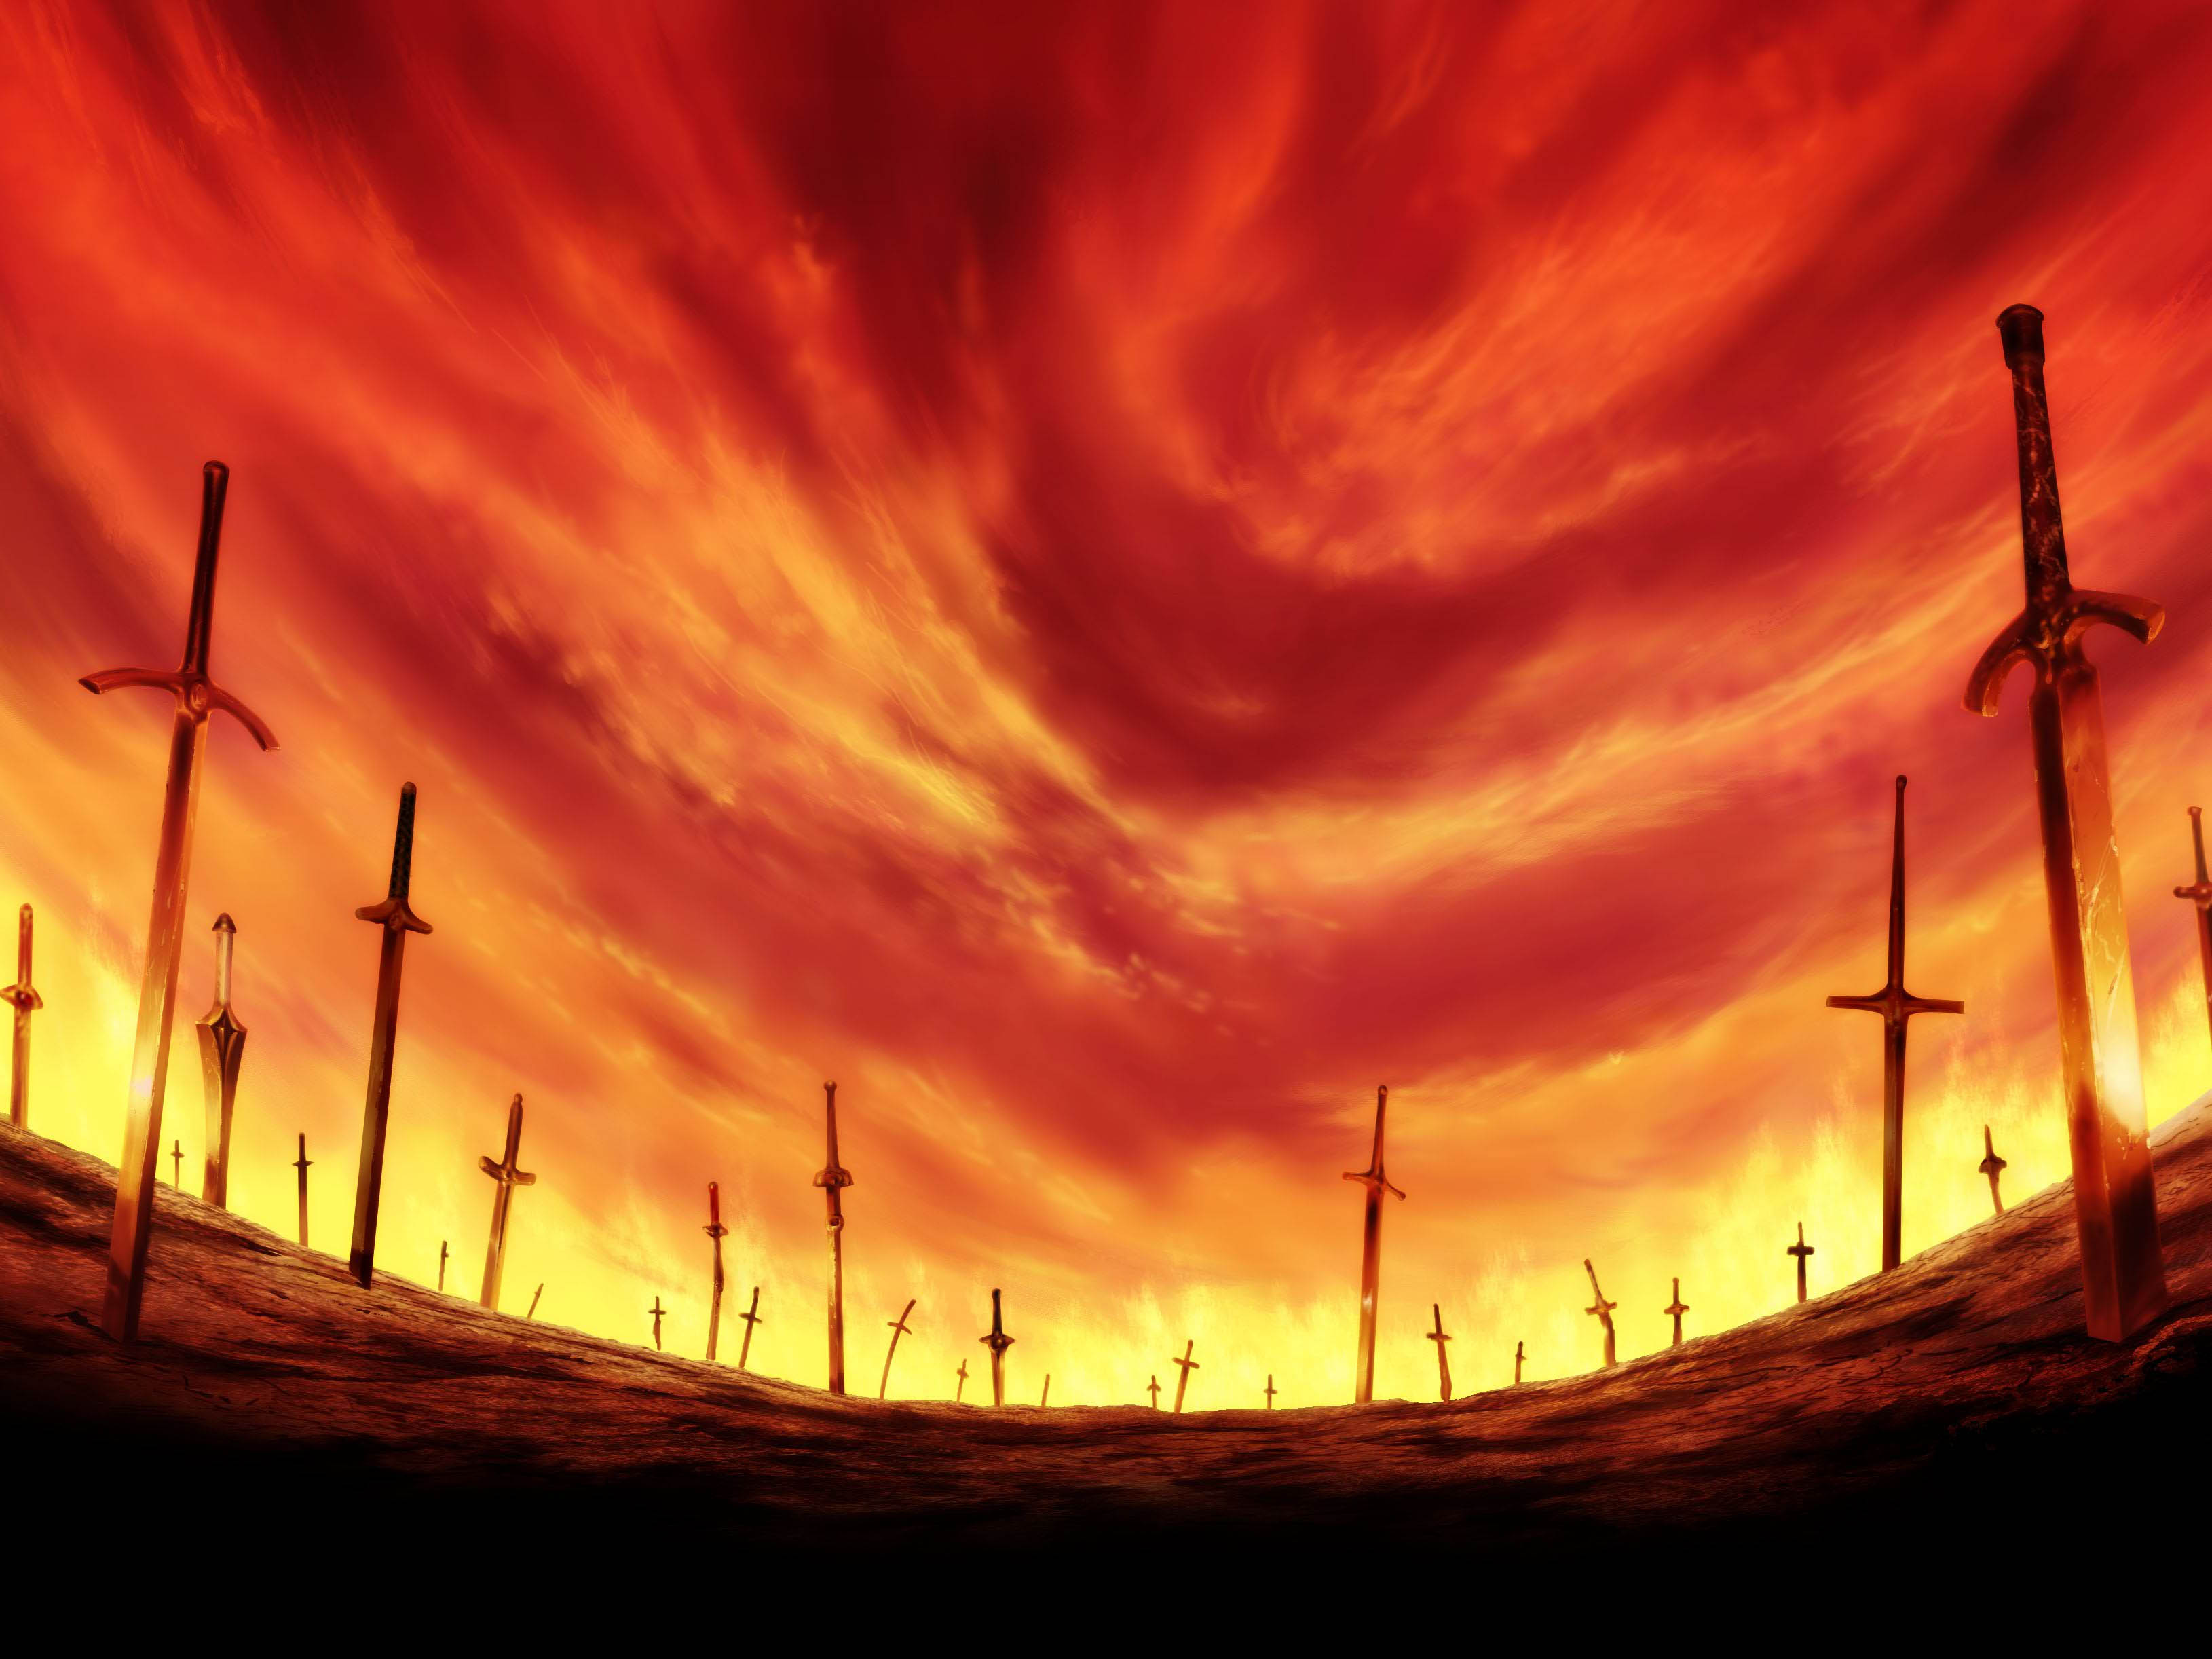 Anime - Fate/Stay Night: Unlimited Blade Works  Wallpaper